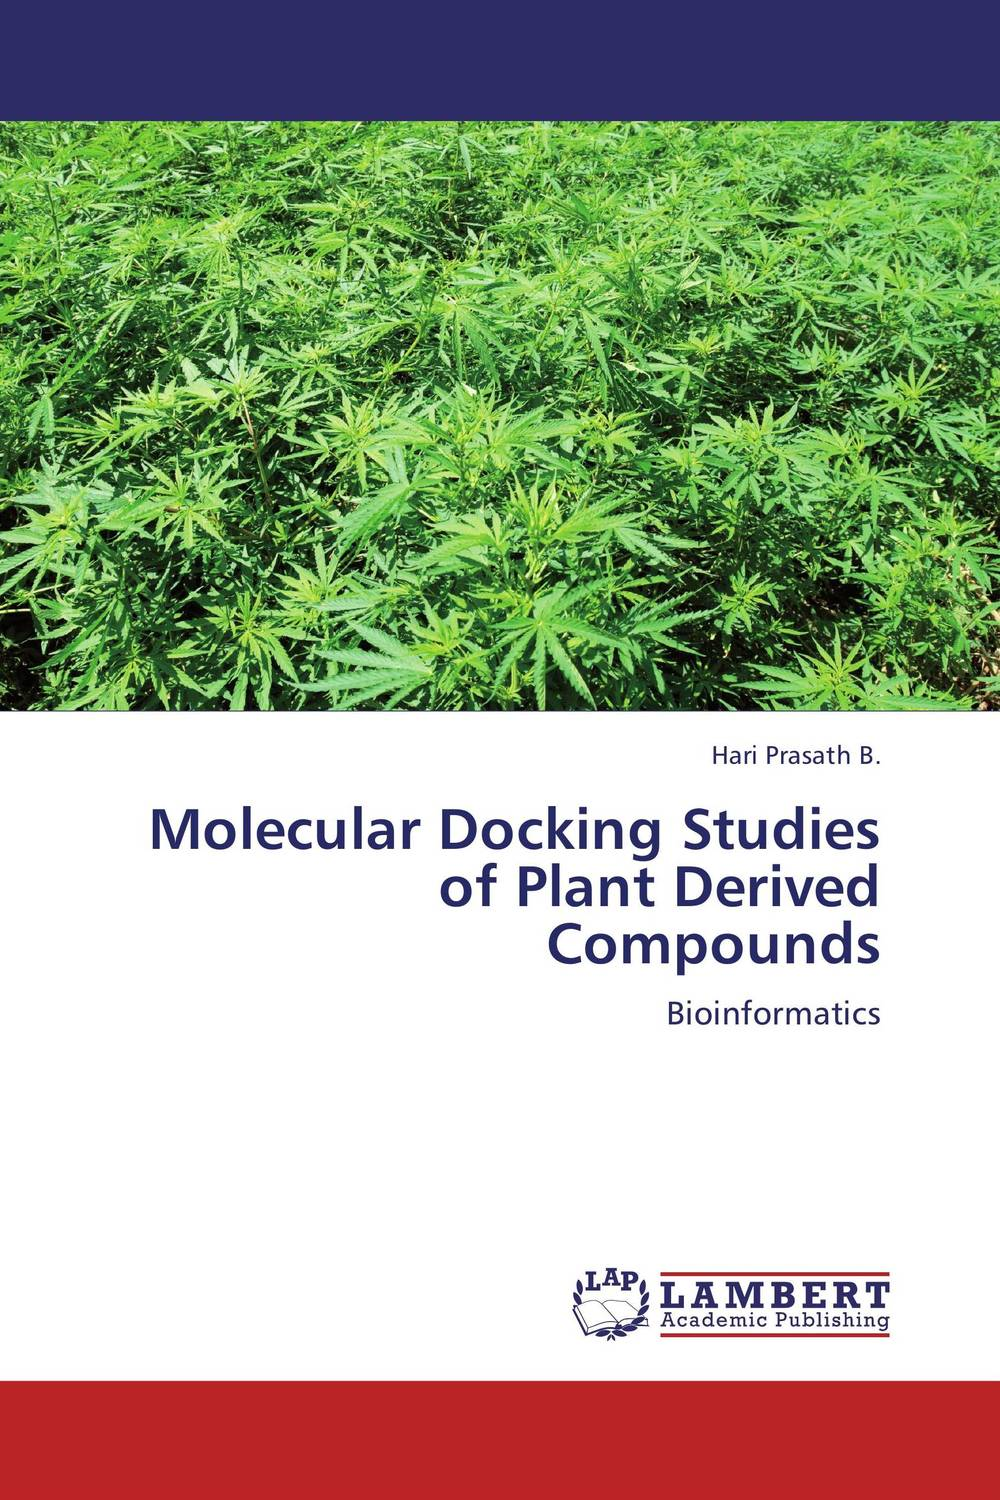 Molecular Docking Studies of Plant Derived Compounds mrsa bacteraemia